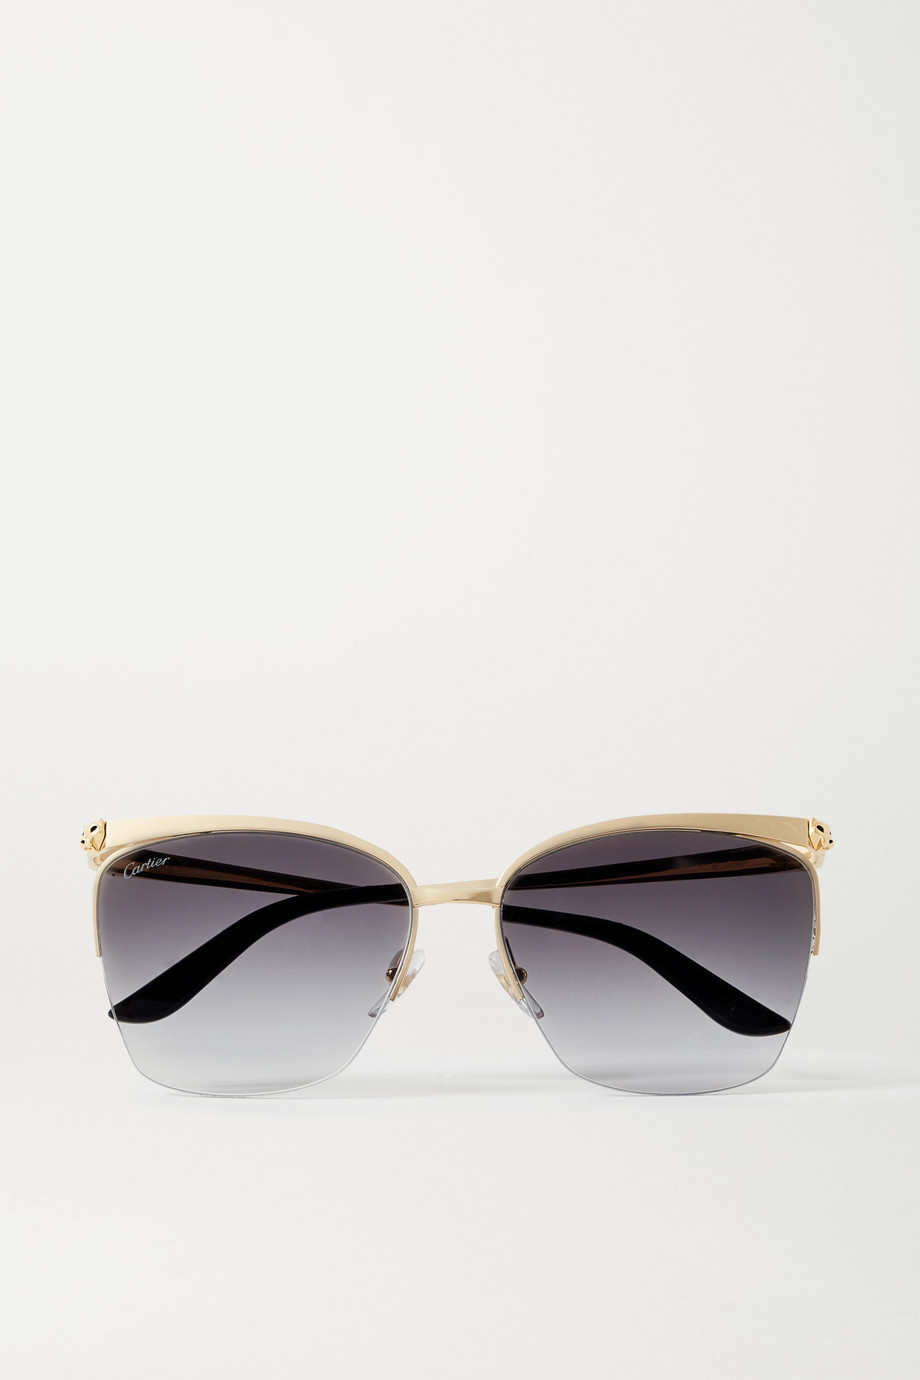 CARTIER EYEWEAR Cat-eye gold-tone sunglasses